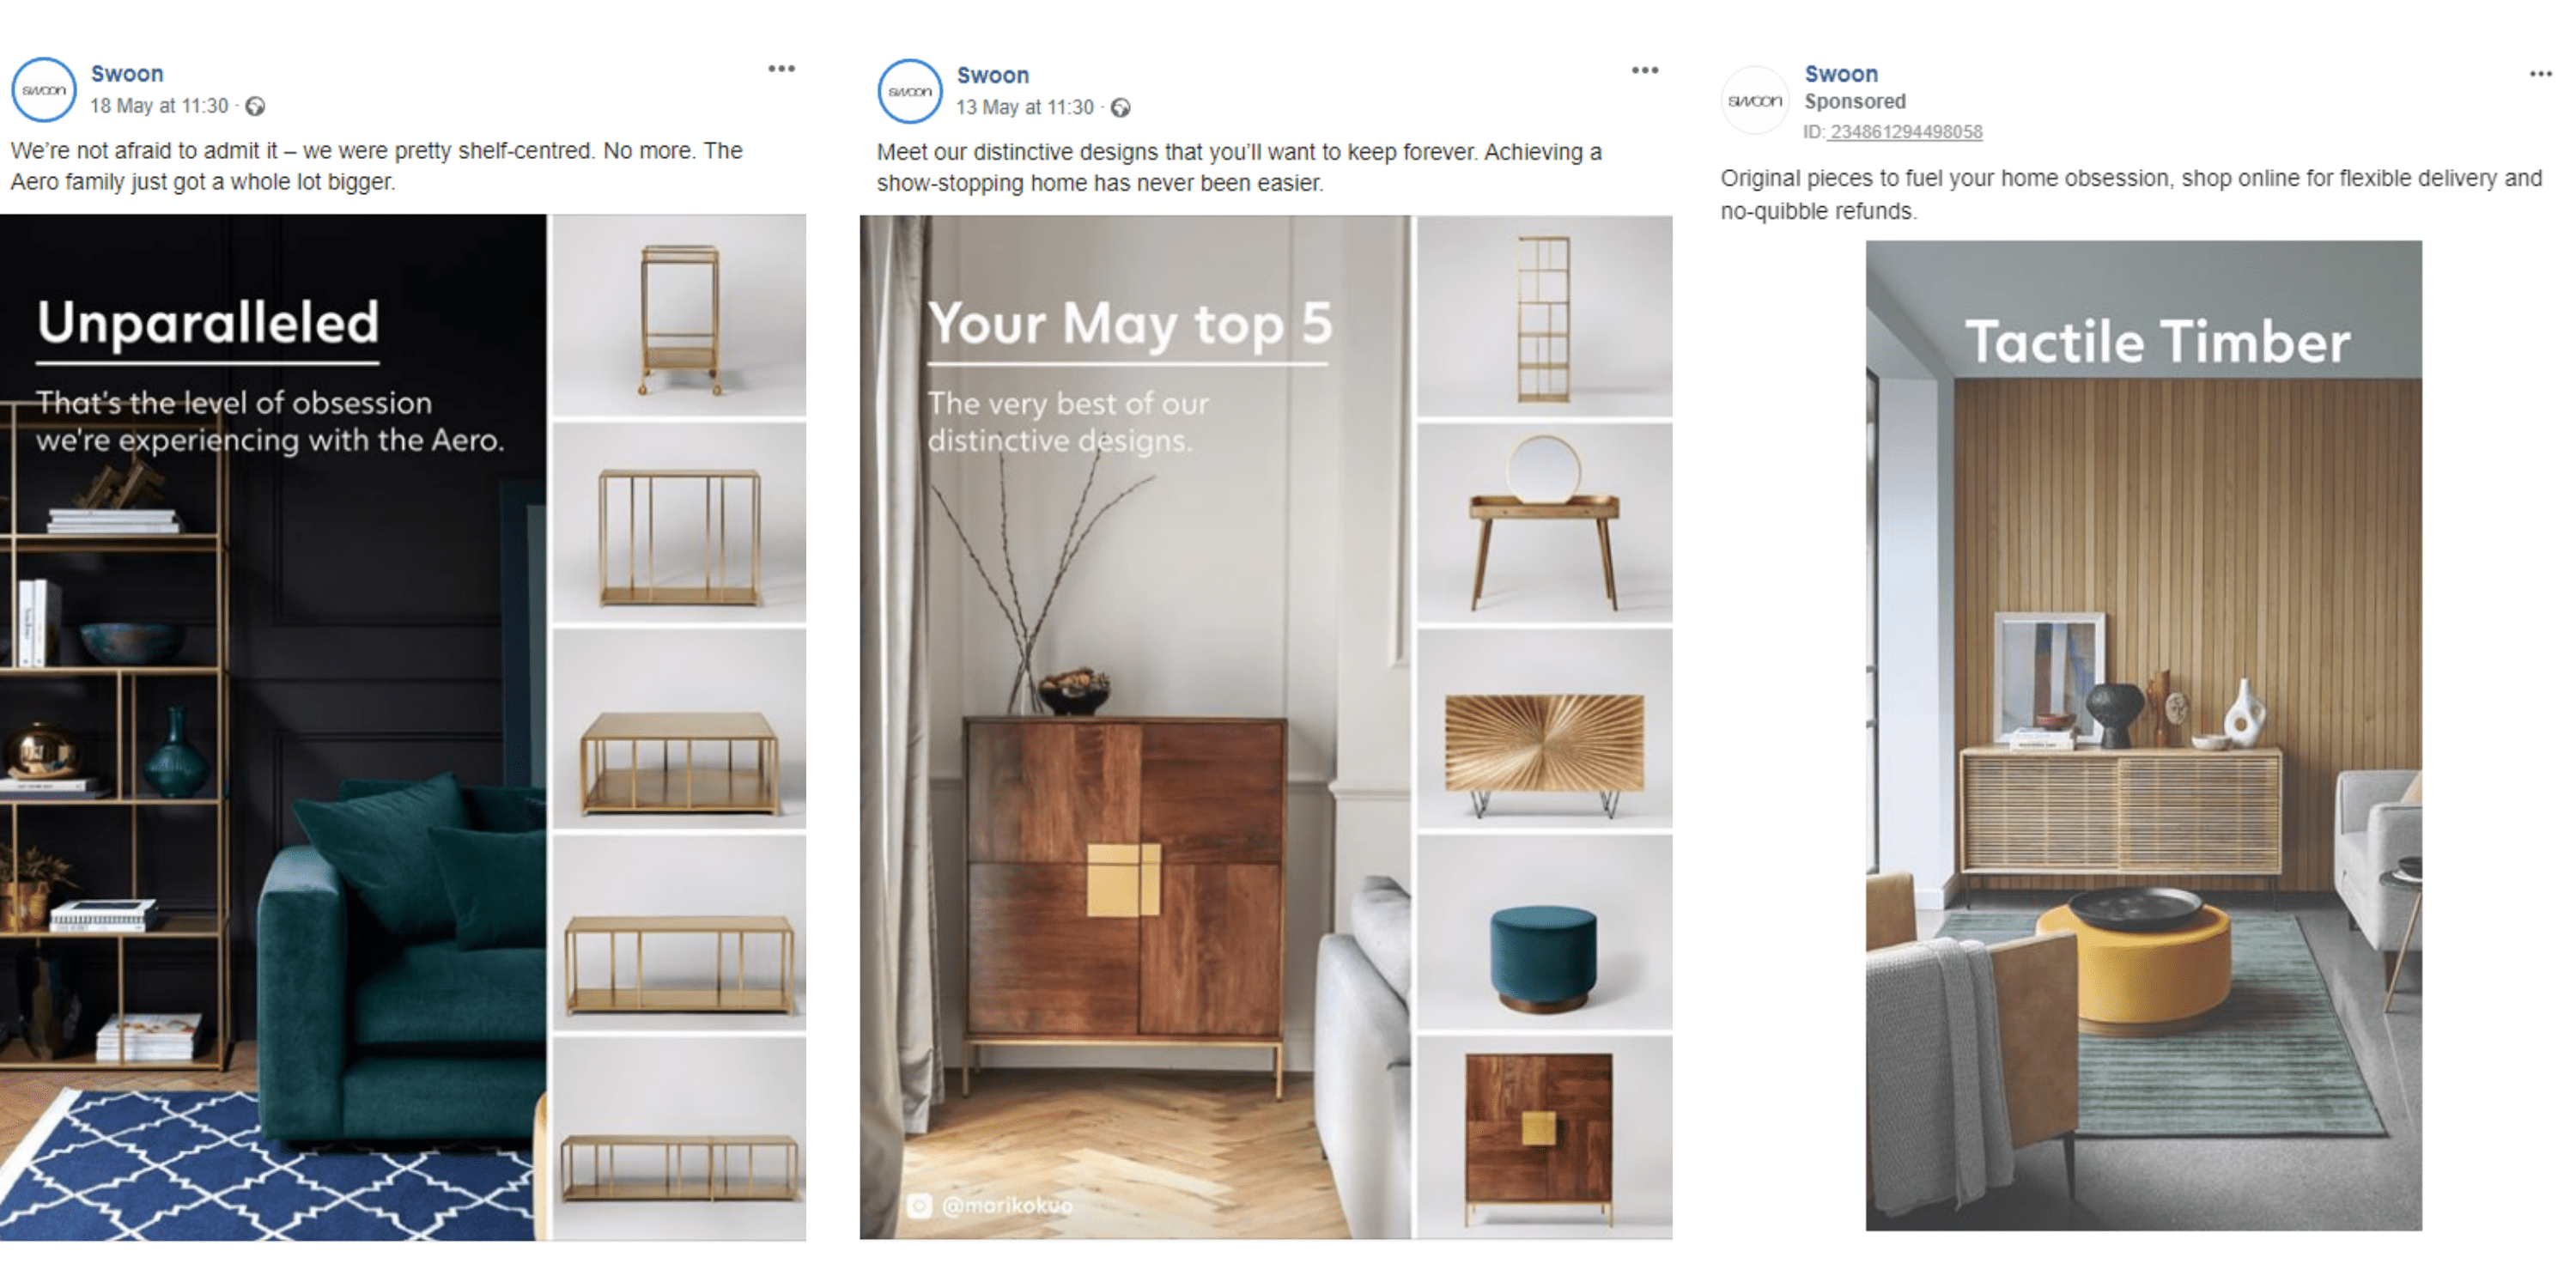 Social ecommerce verticalimage example image